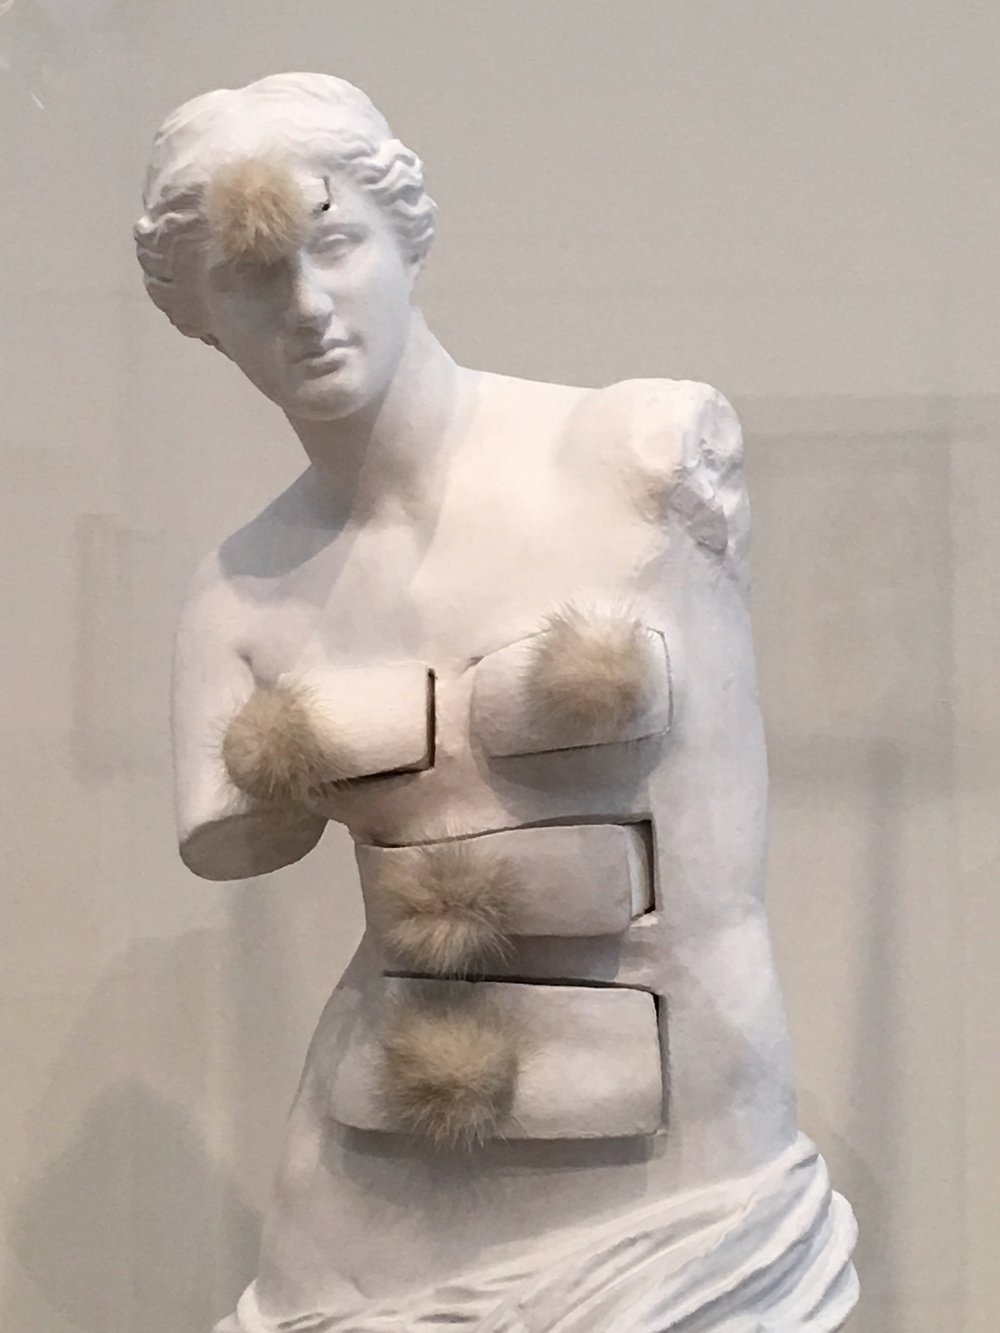 Venus de Milo with Drawers